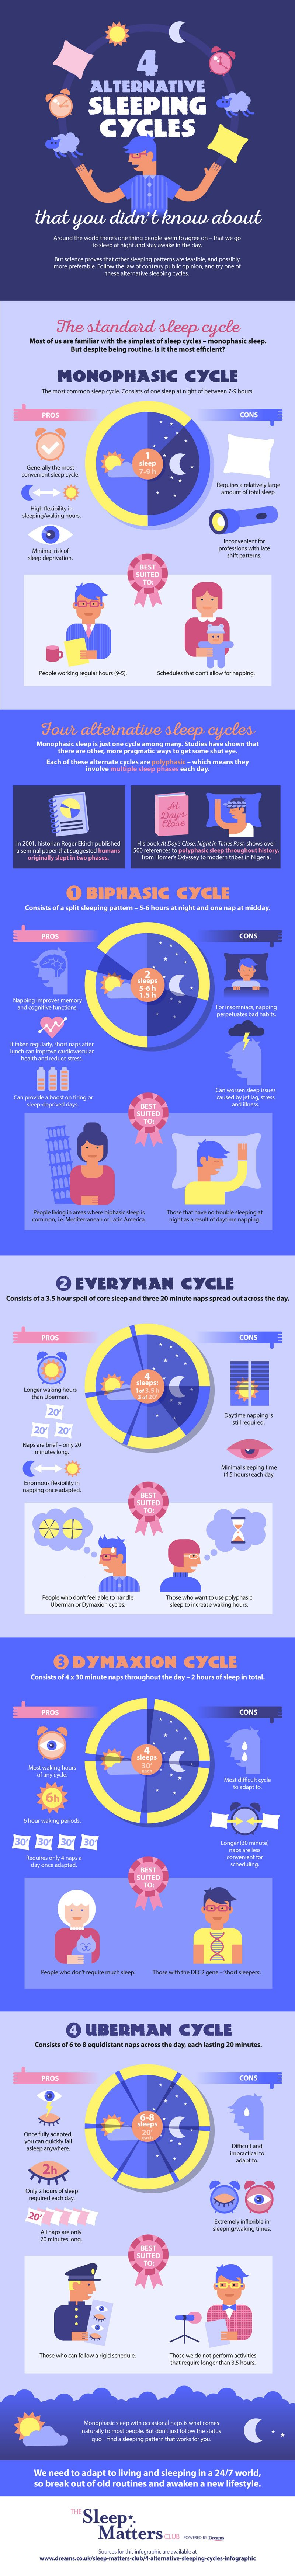 4 Sleep Cycles That You Didn't Know About, an infographic guide.